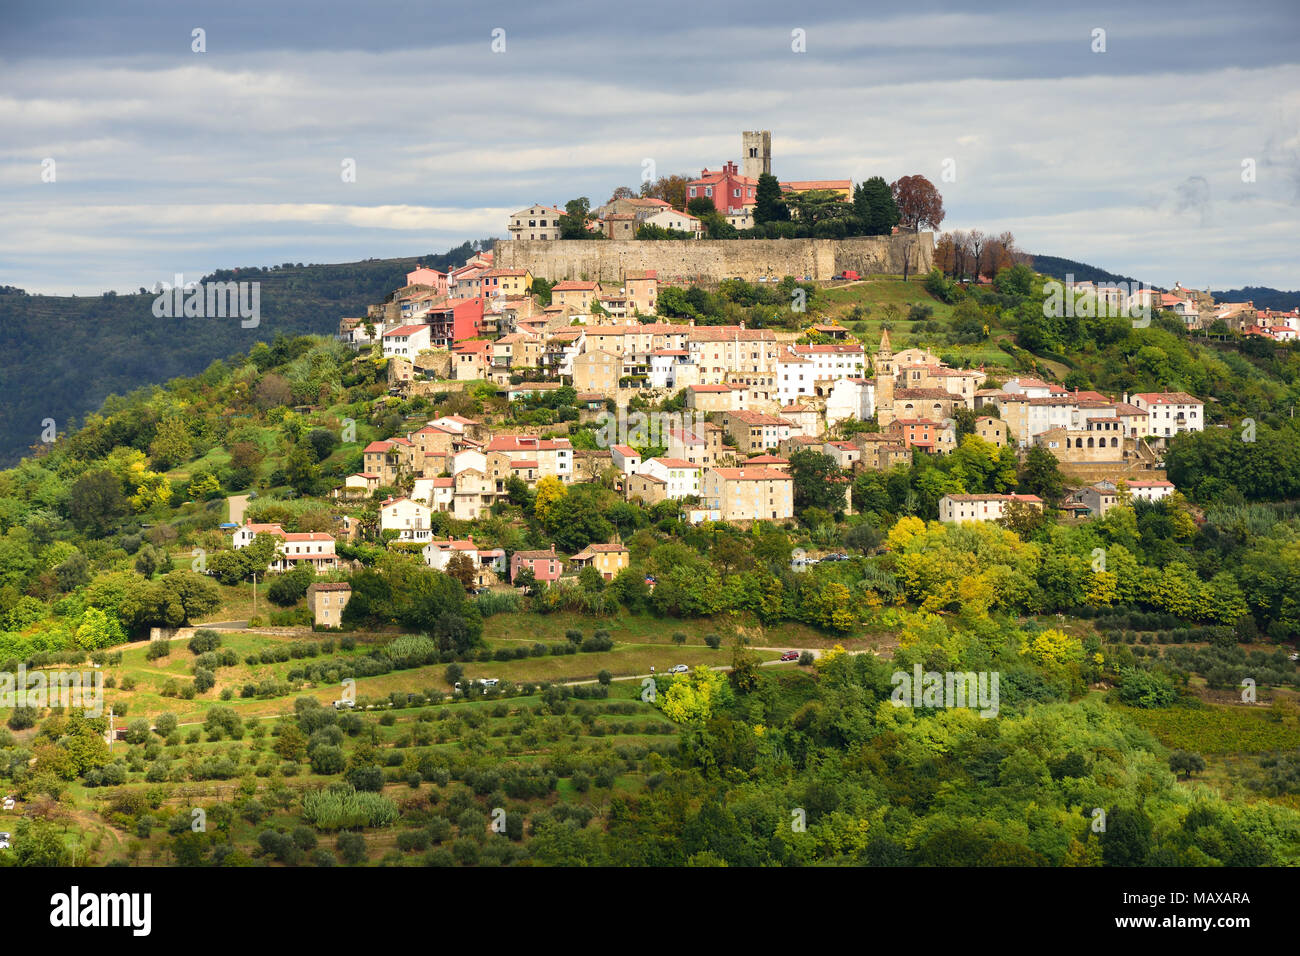 View to Motovun, croatian medieval town built on the hill. Stock Photo